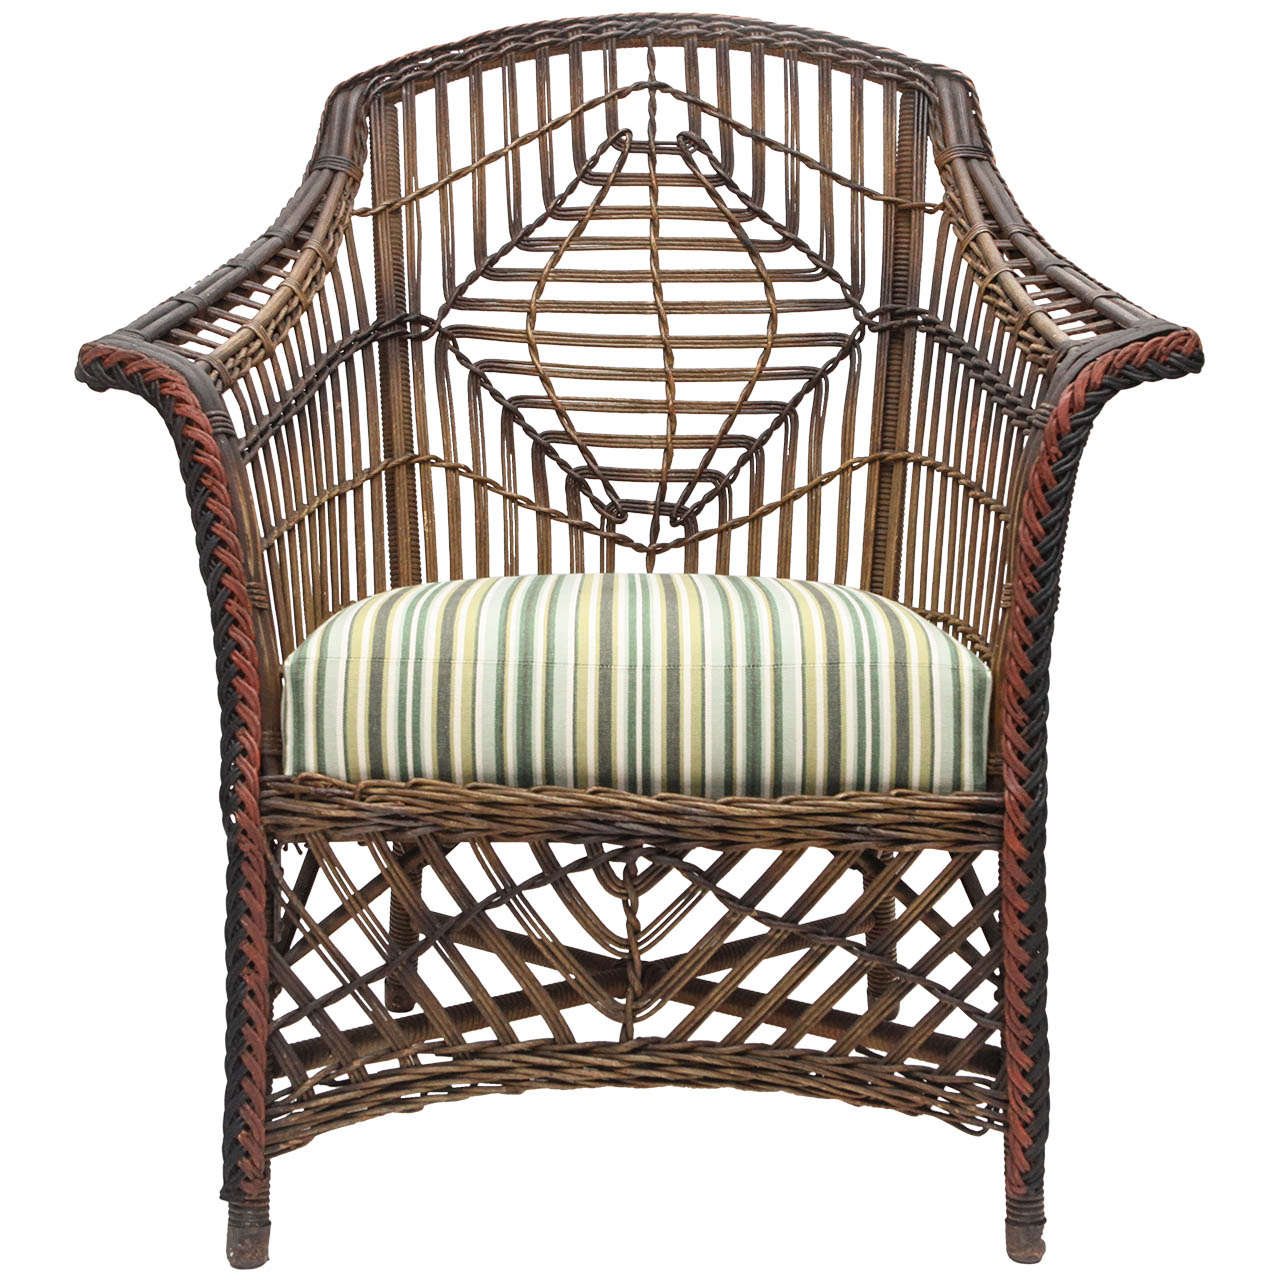 Early 20th Century Loyd Loom Arm Chair At 1stdibs